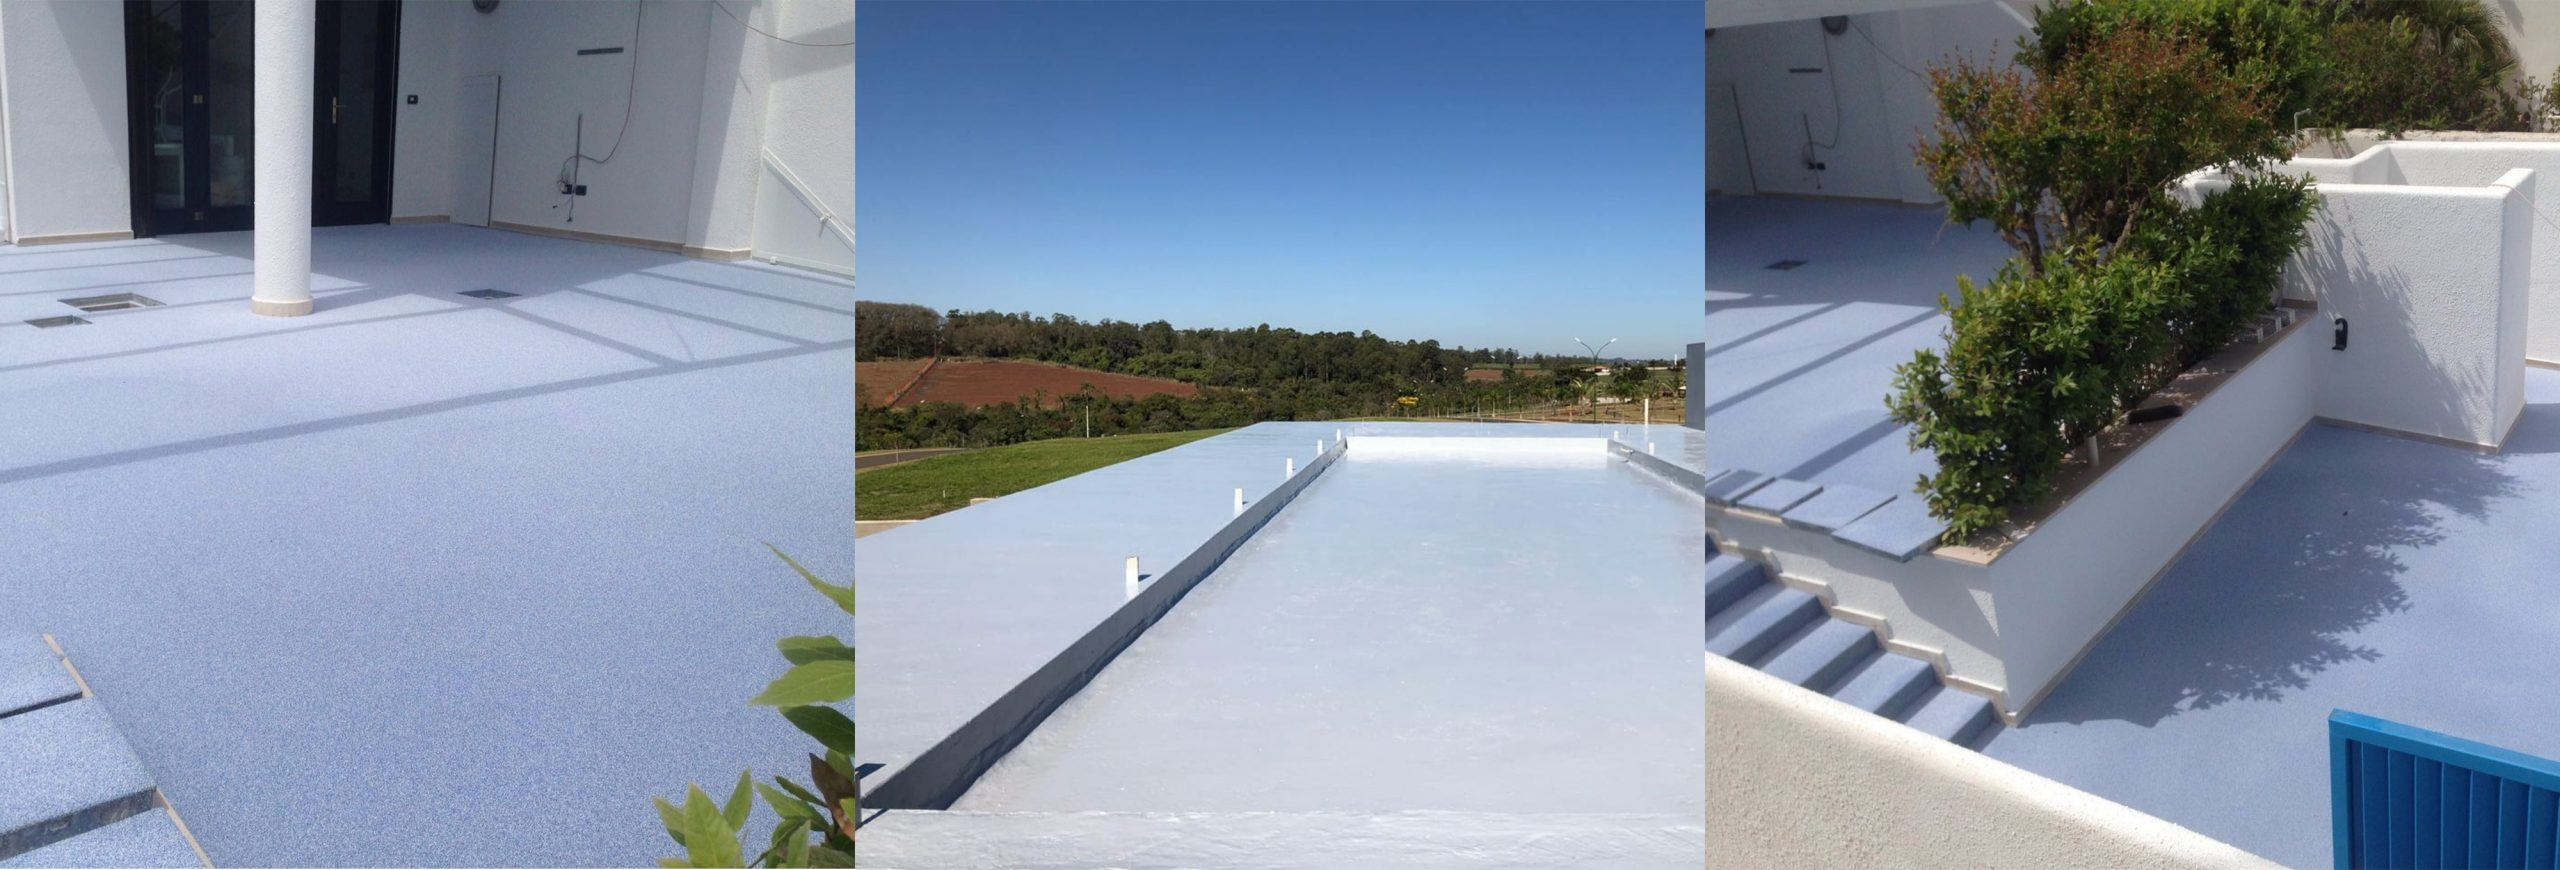 Liquid Roofing Fast Coat